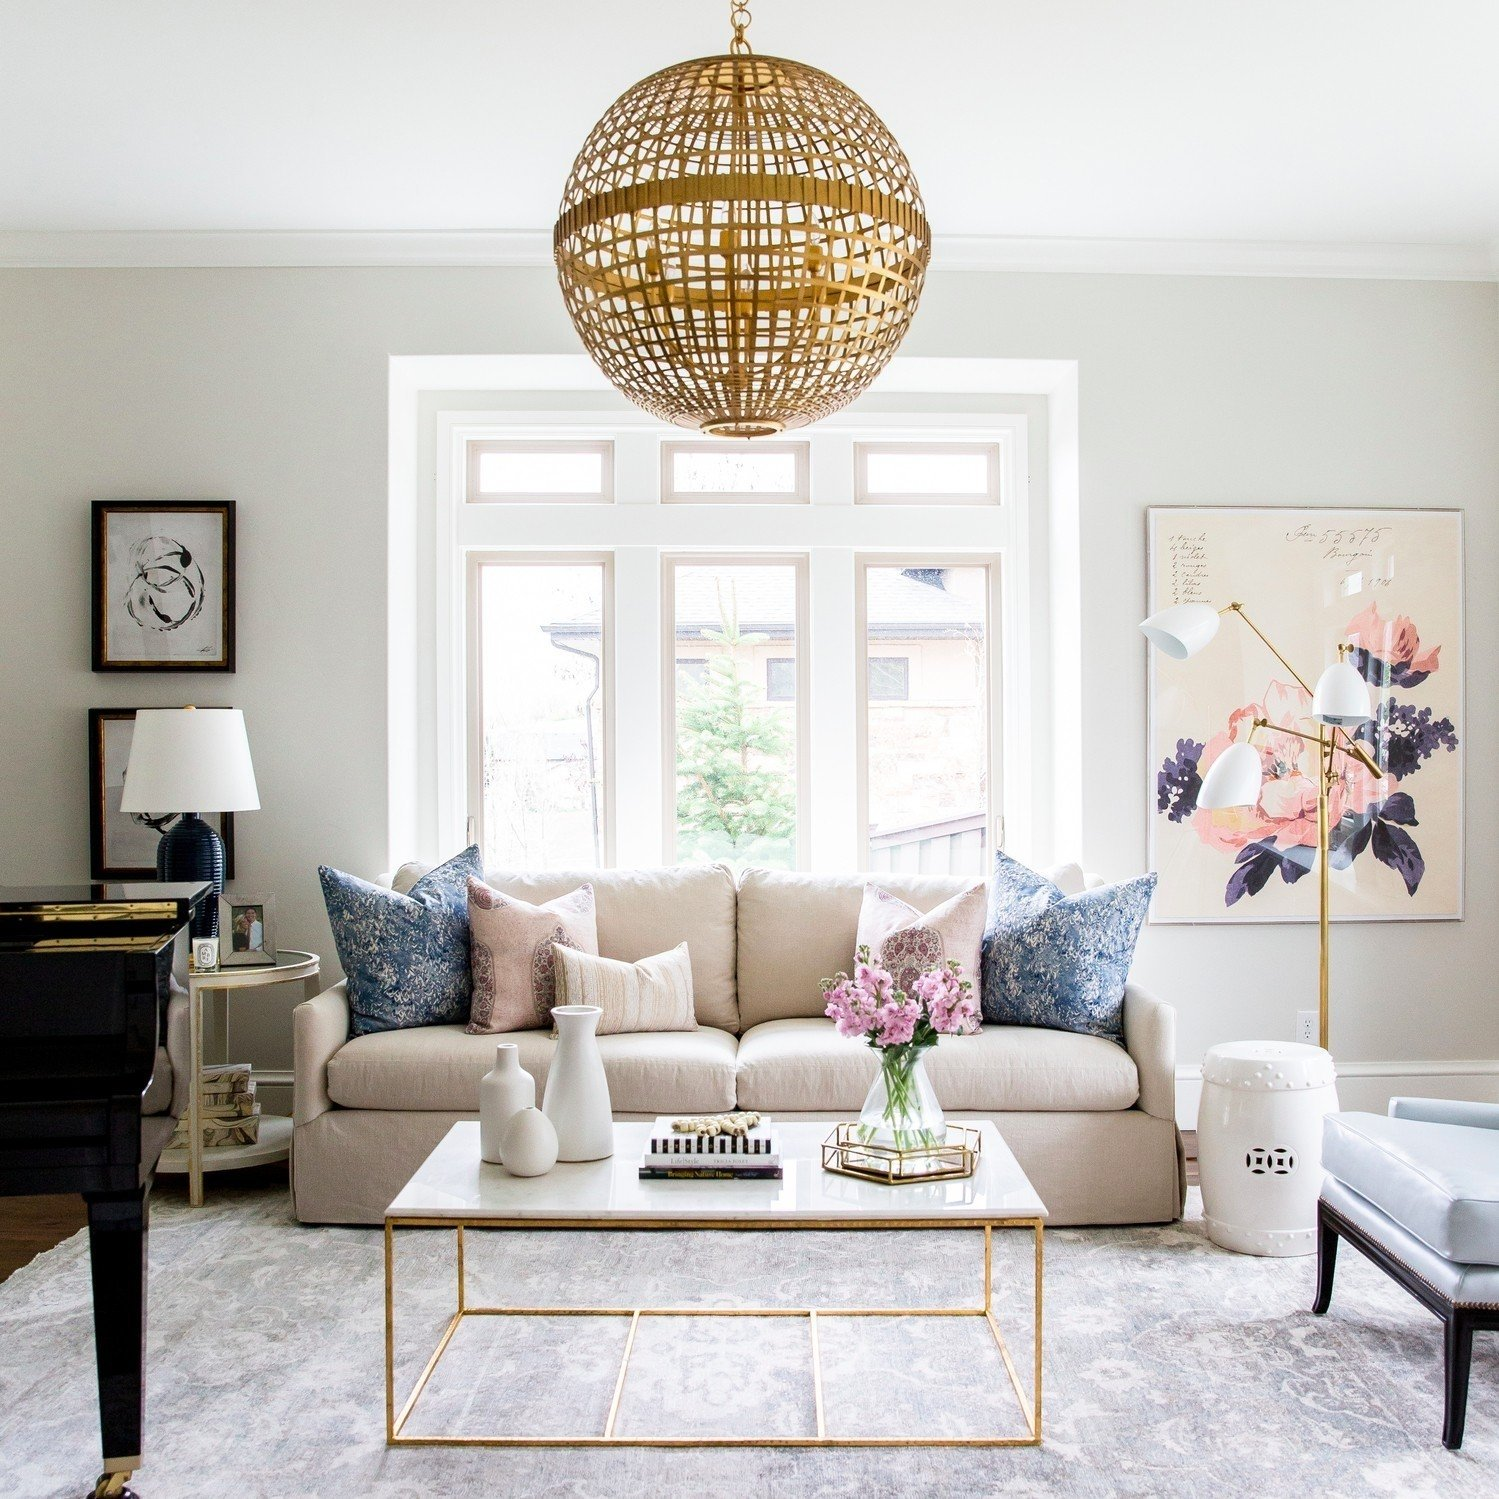 10 Ideal Living Room Ideas For Apartments first apartment decorating ideas popsugar home 3